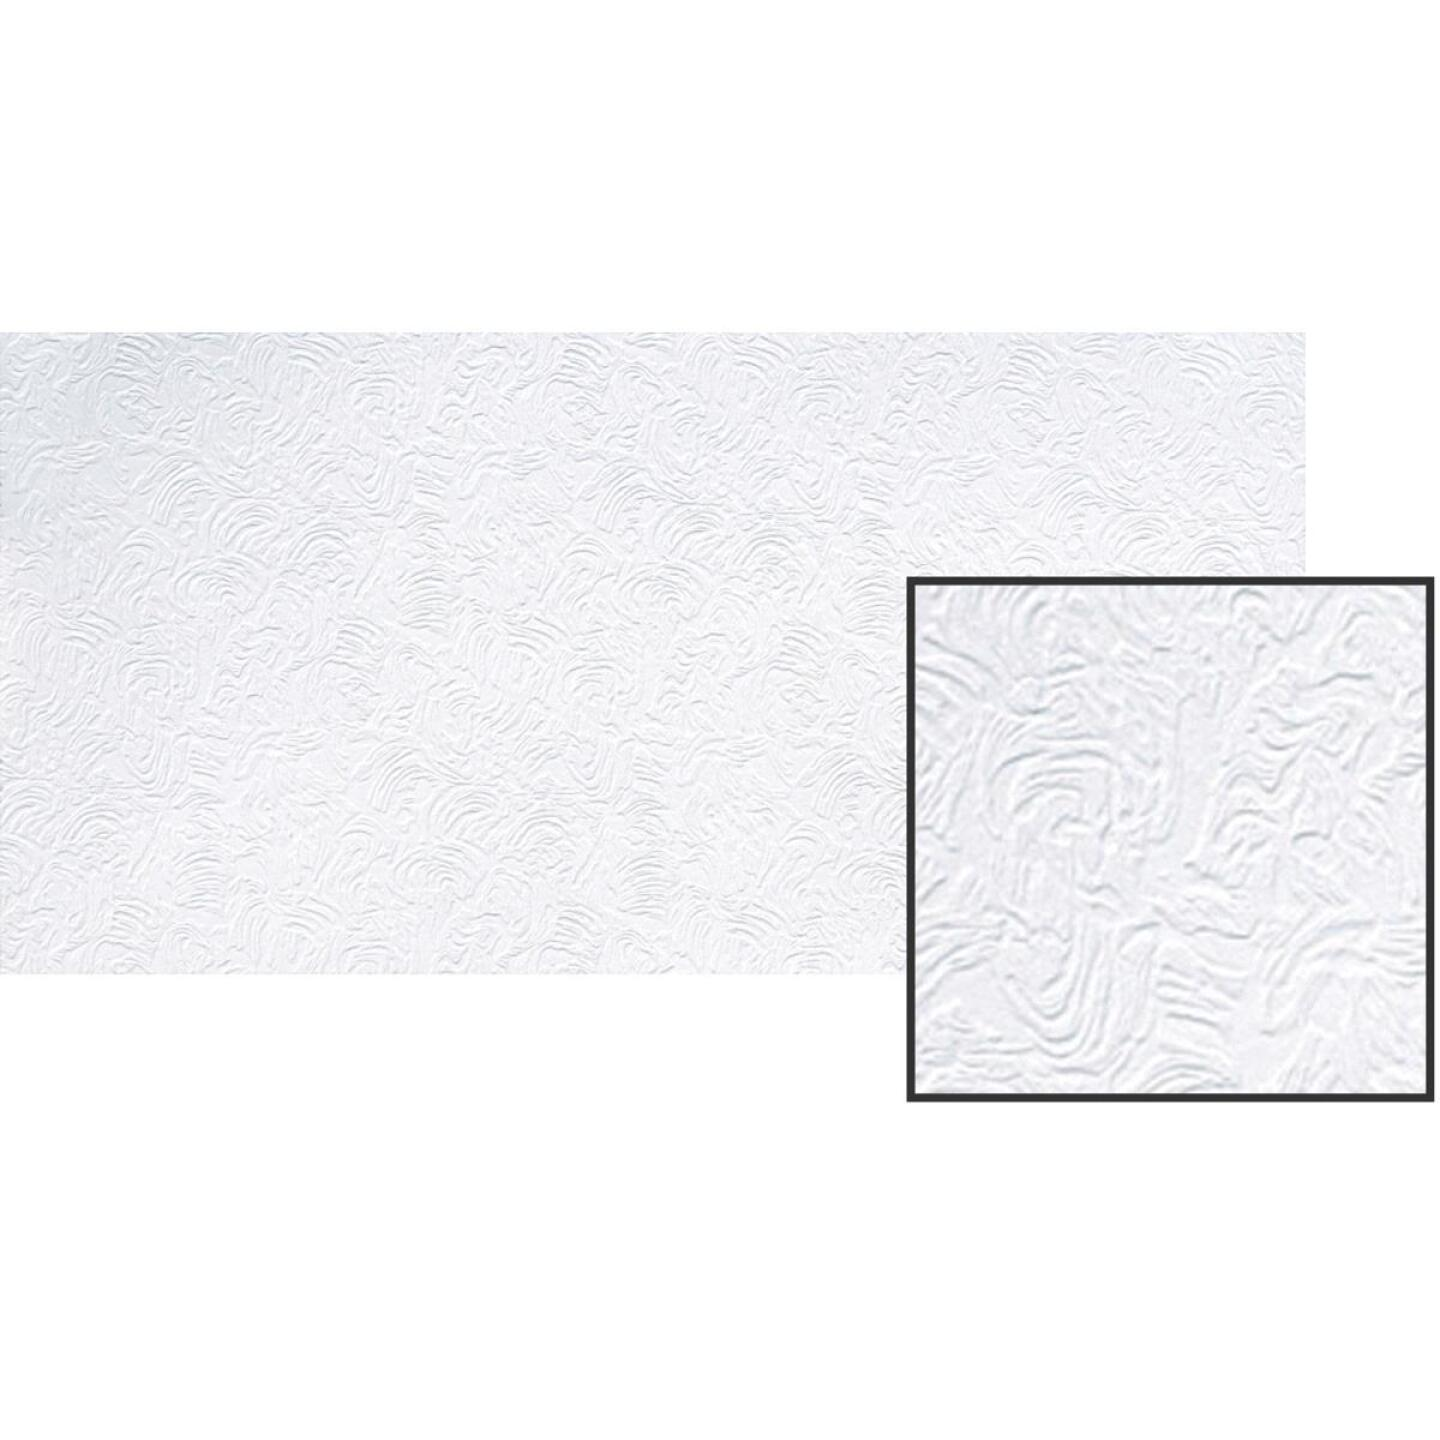 BP LifeStyle Caravelle 2 Ft. x 4 Ft. White Wood Fiber Suspended Ceiling Tile (8-Count) Image 2